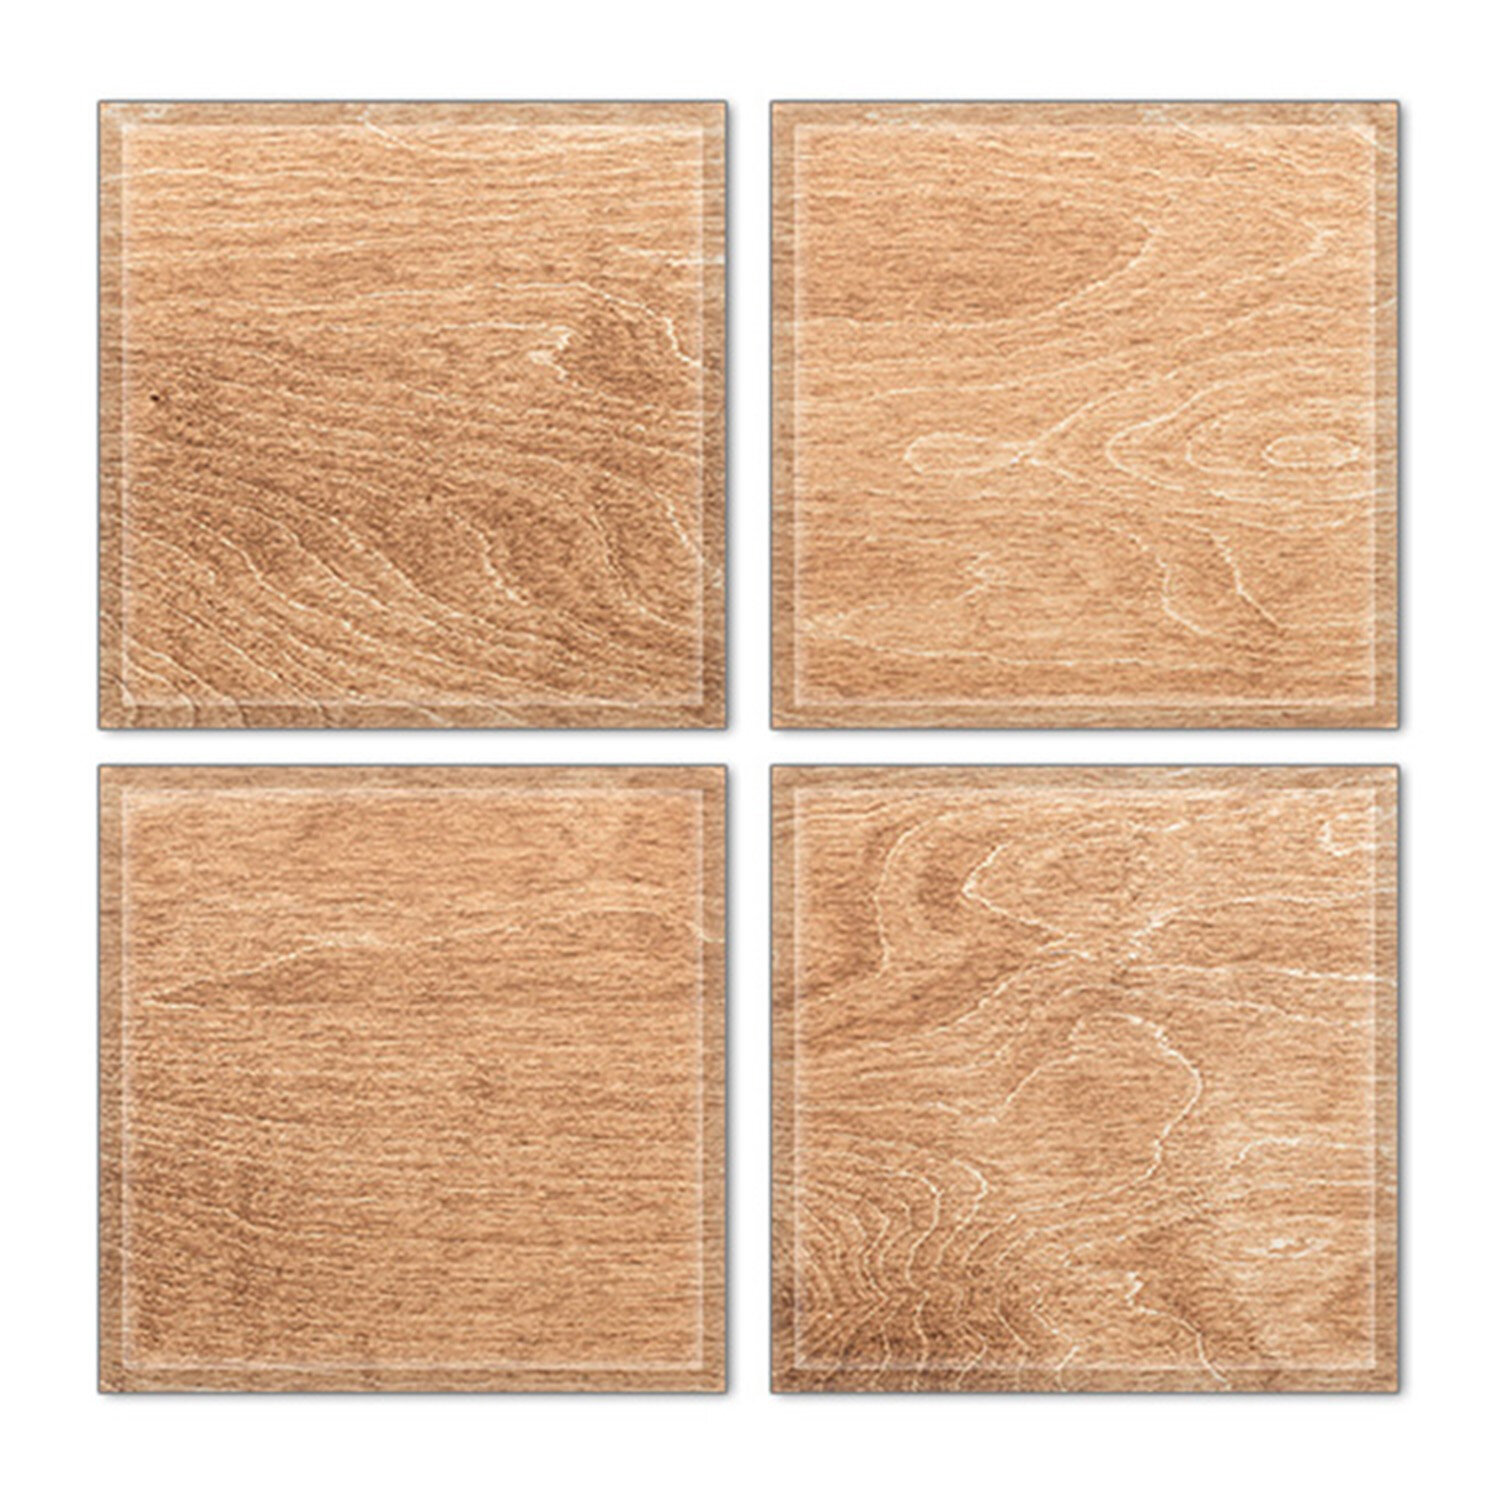 Upscale Designs By Ema 6 X 6 Glass Decorative Accent Tile In Brown Wayfair Ca